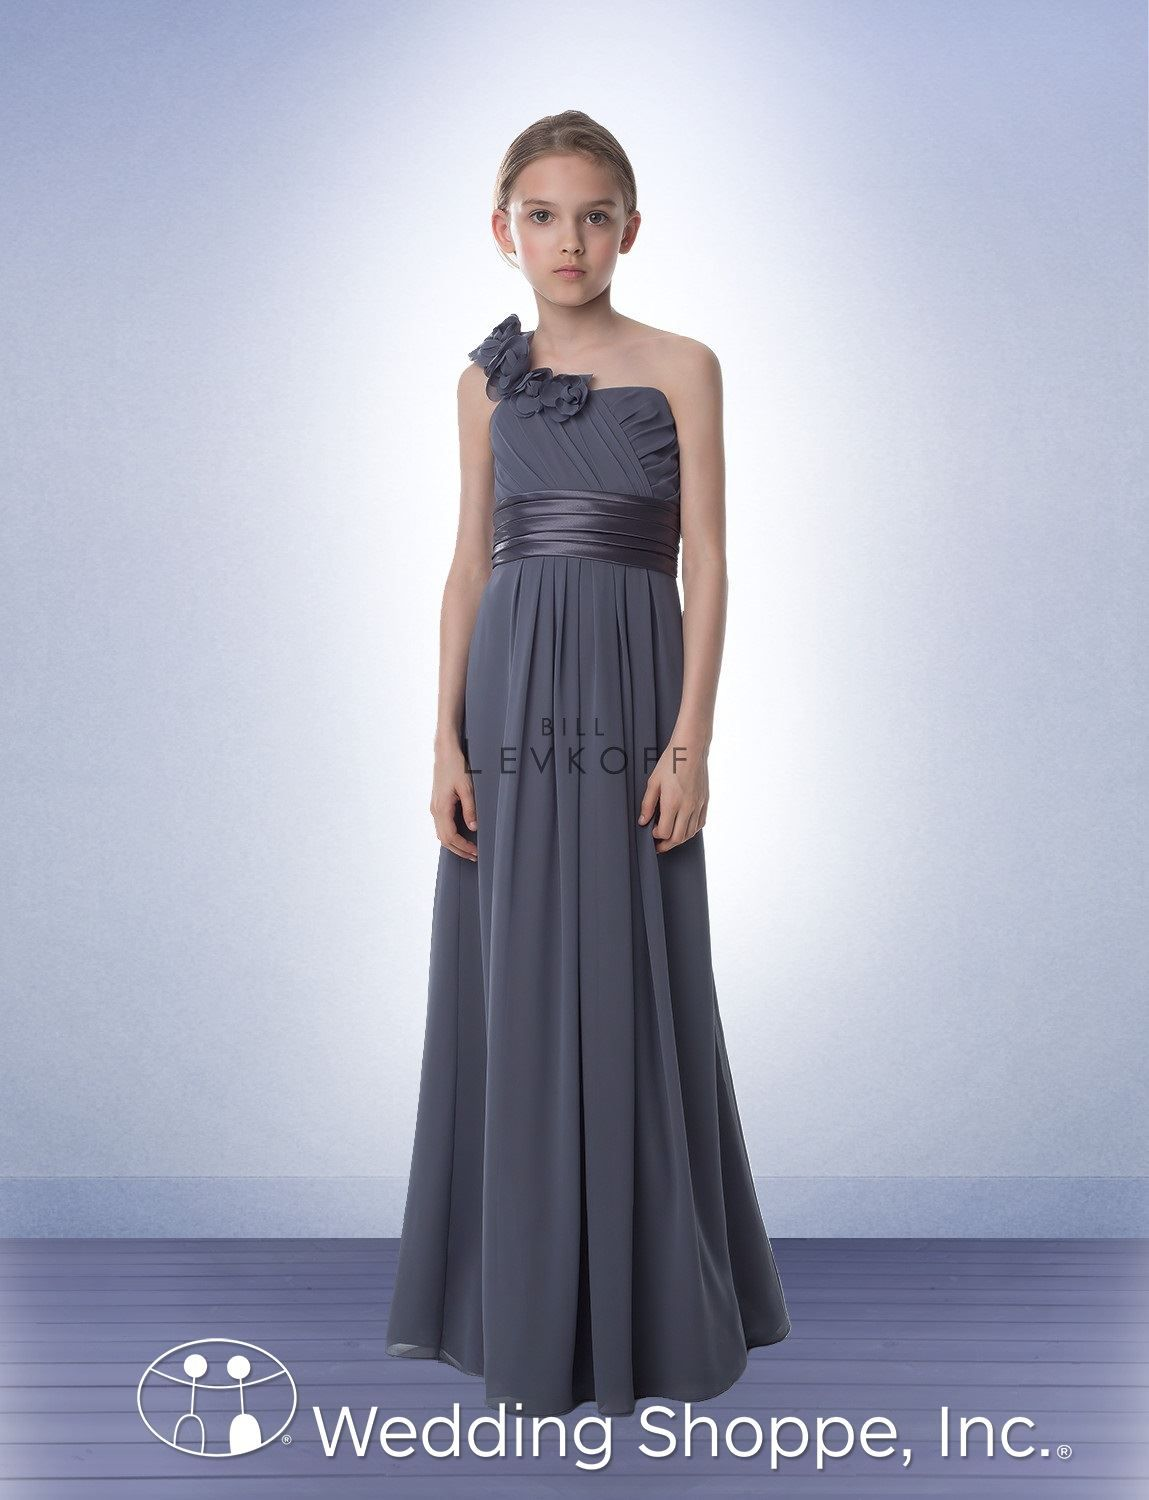 A standout chiffon junior bridesmaid dress member board bride discover the bill levkoff 33402 junior bridesmaid dress find exceptional bill levkoff junior bridesmaid dresses at the wedding shoppe ombrellifo Image collections